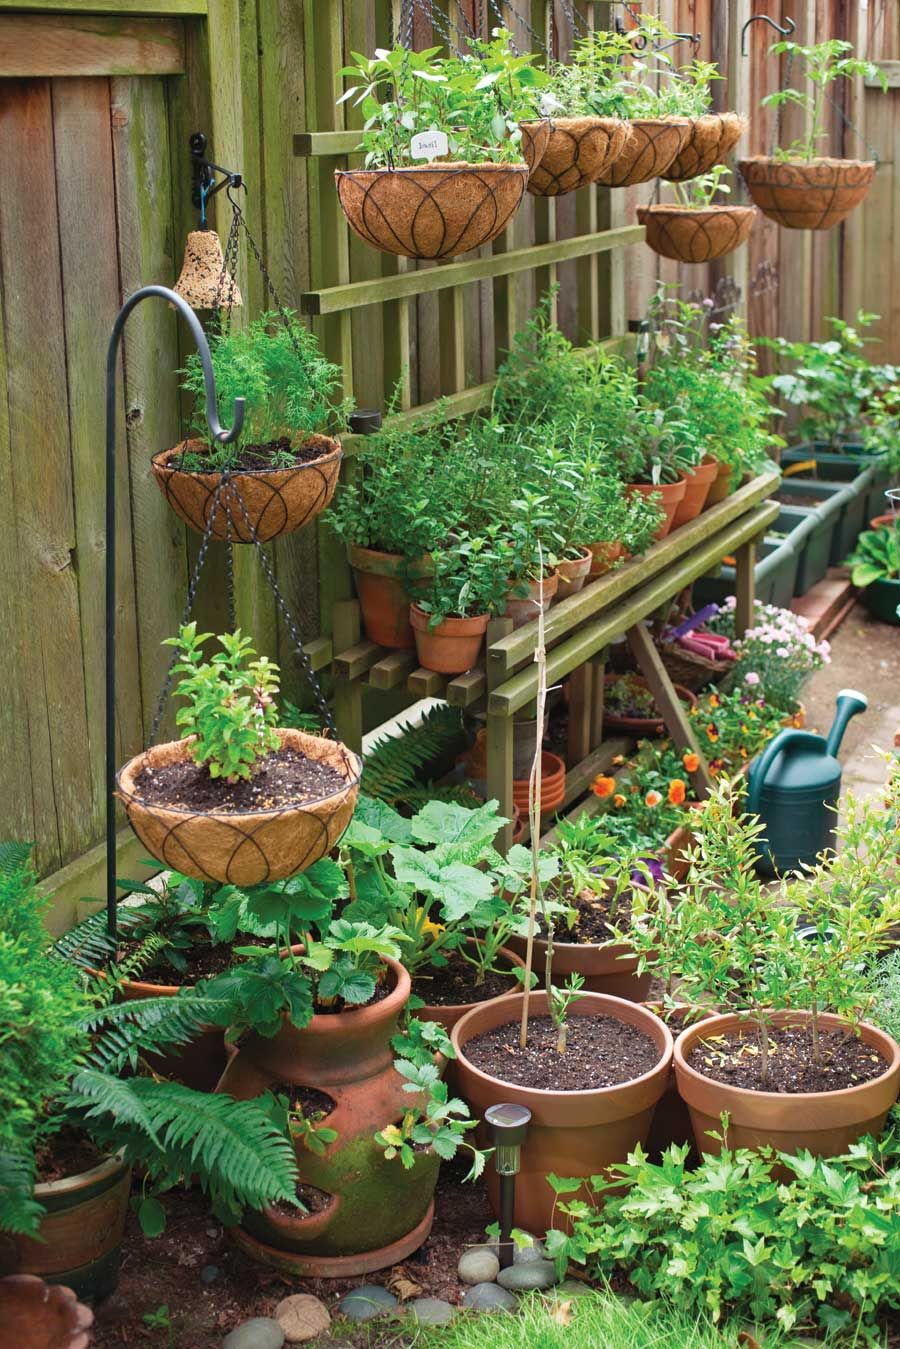 Watch Our Video Below Of Container Garden Ideas For Planning Or Designing A Vegetable Simple Gardening Tips Creating The